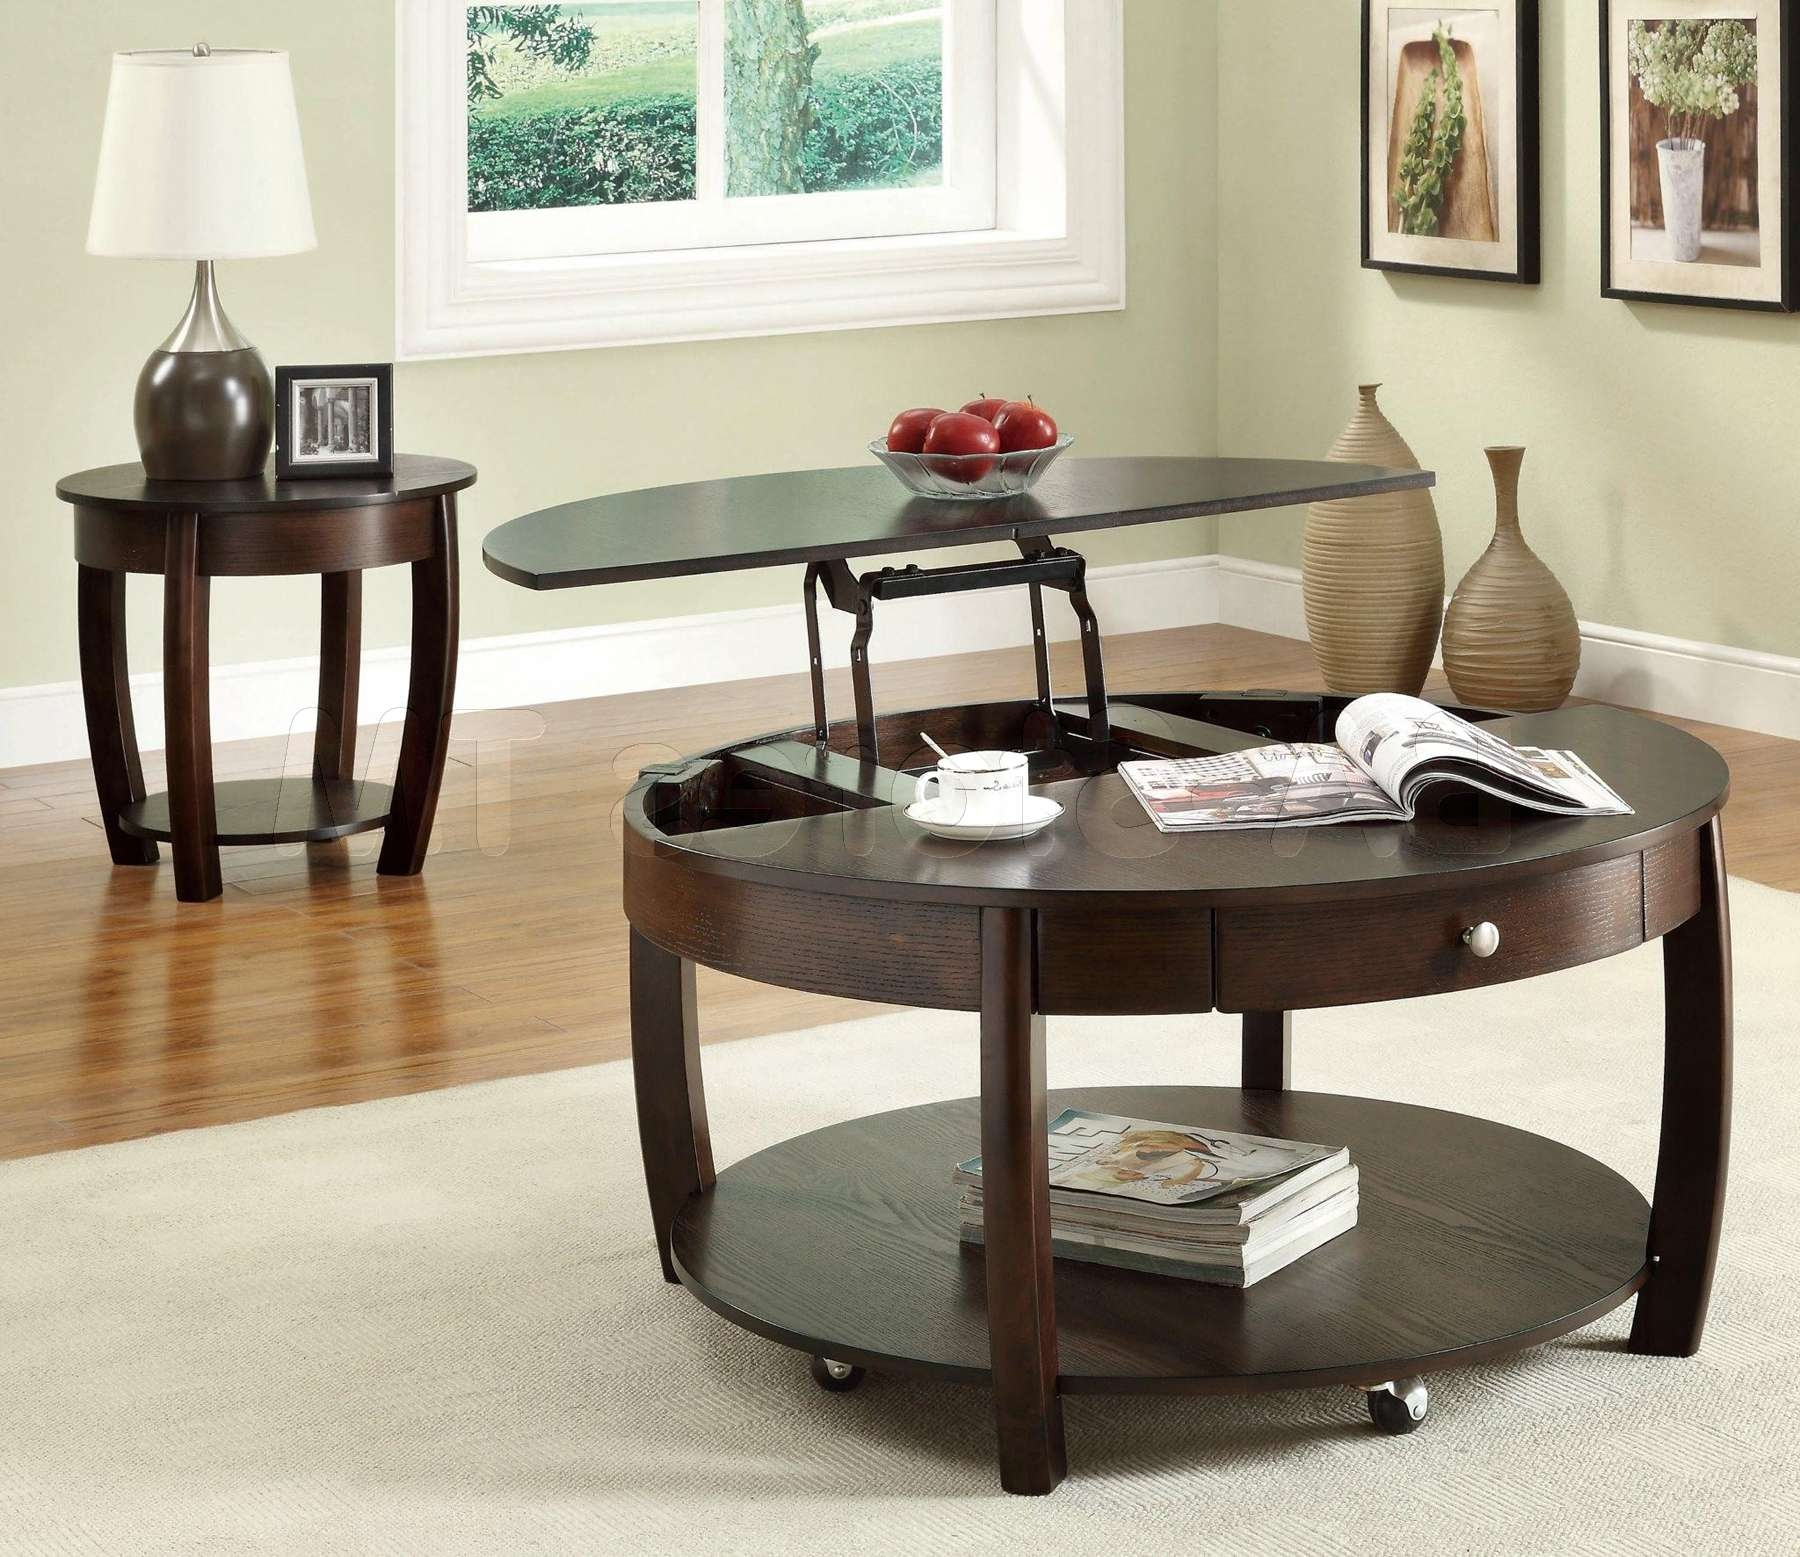 Coffee Tables Throughout Most Up To Date Lift Up Top Coffee Tables (View 7 of 20)